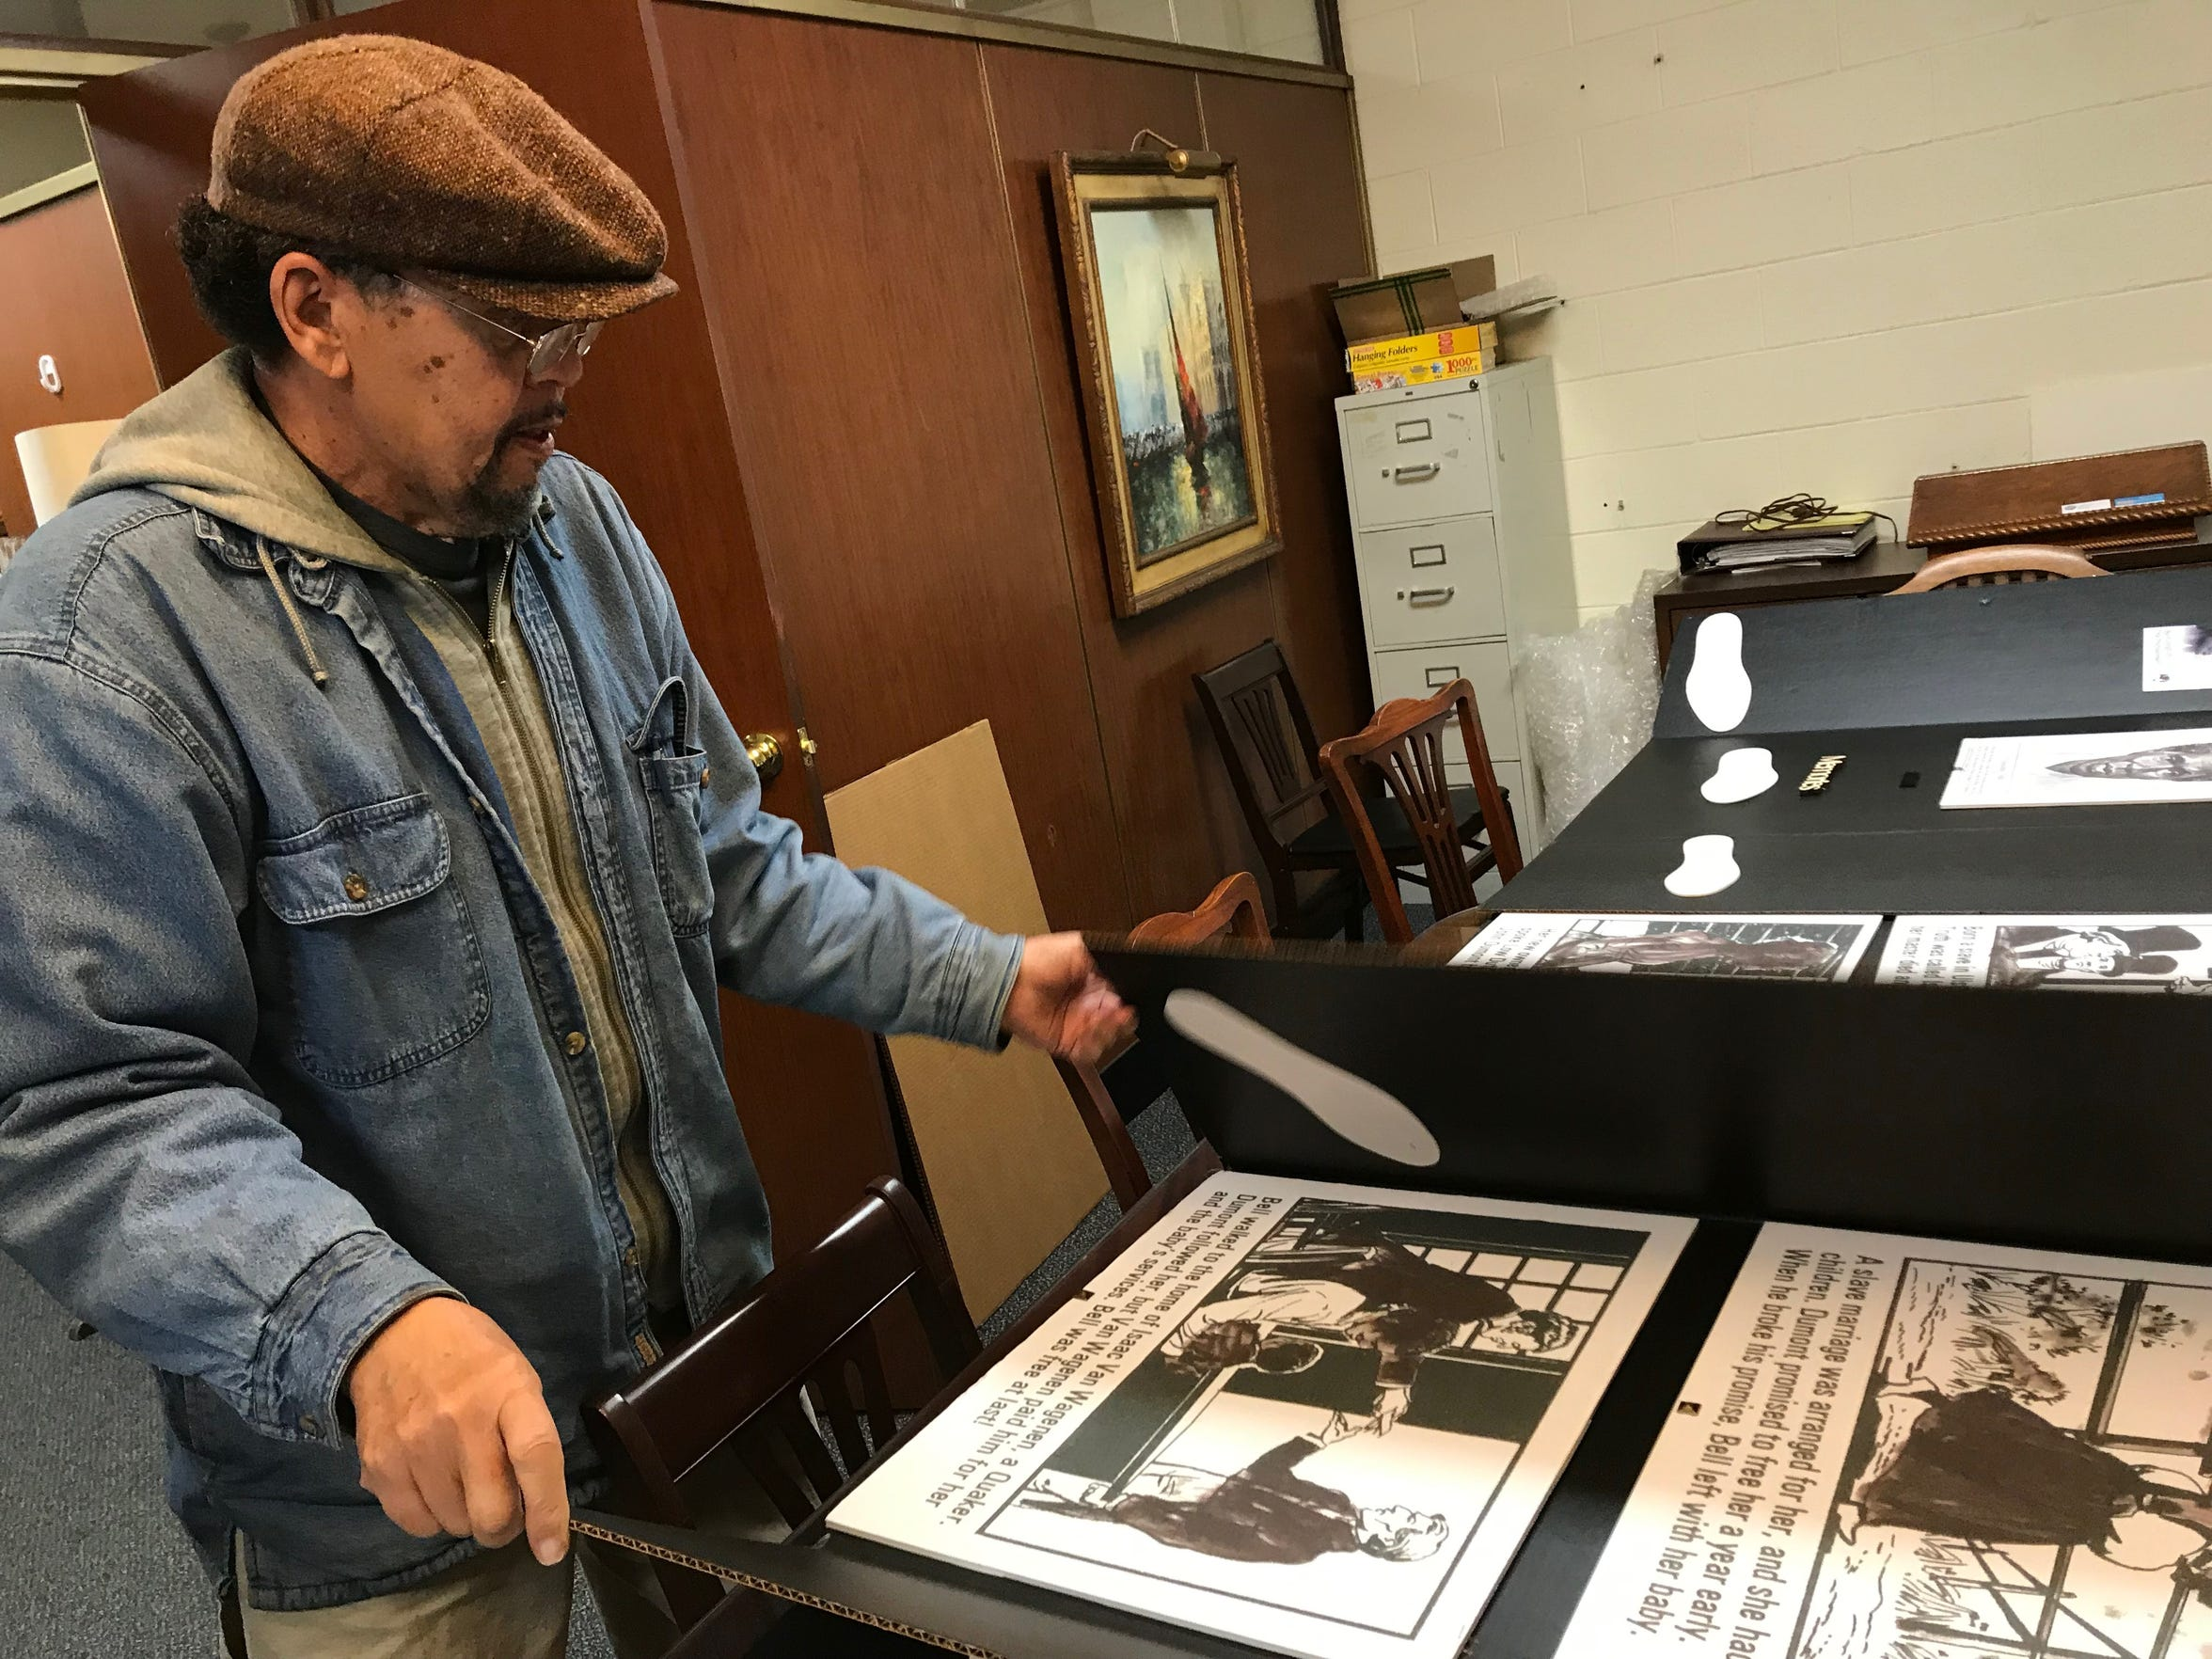 Thomas McLiechey lays out a timeline display he created to provide a visual aid for young people learning about Sojourner Truth.